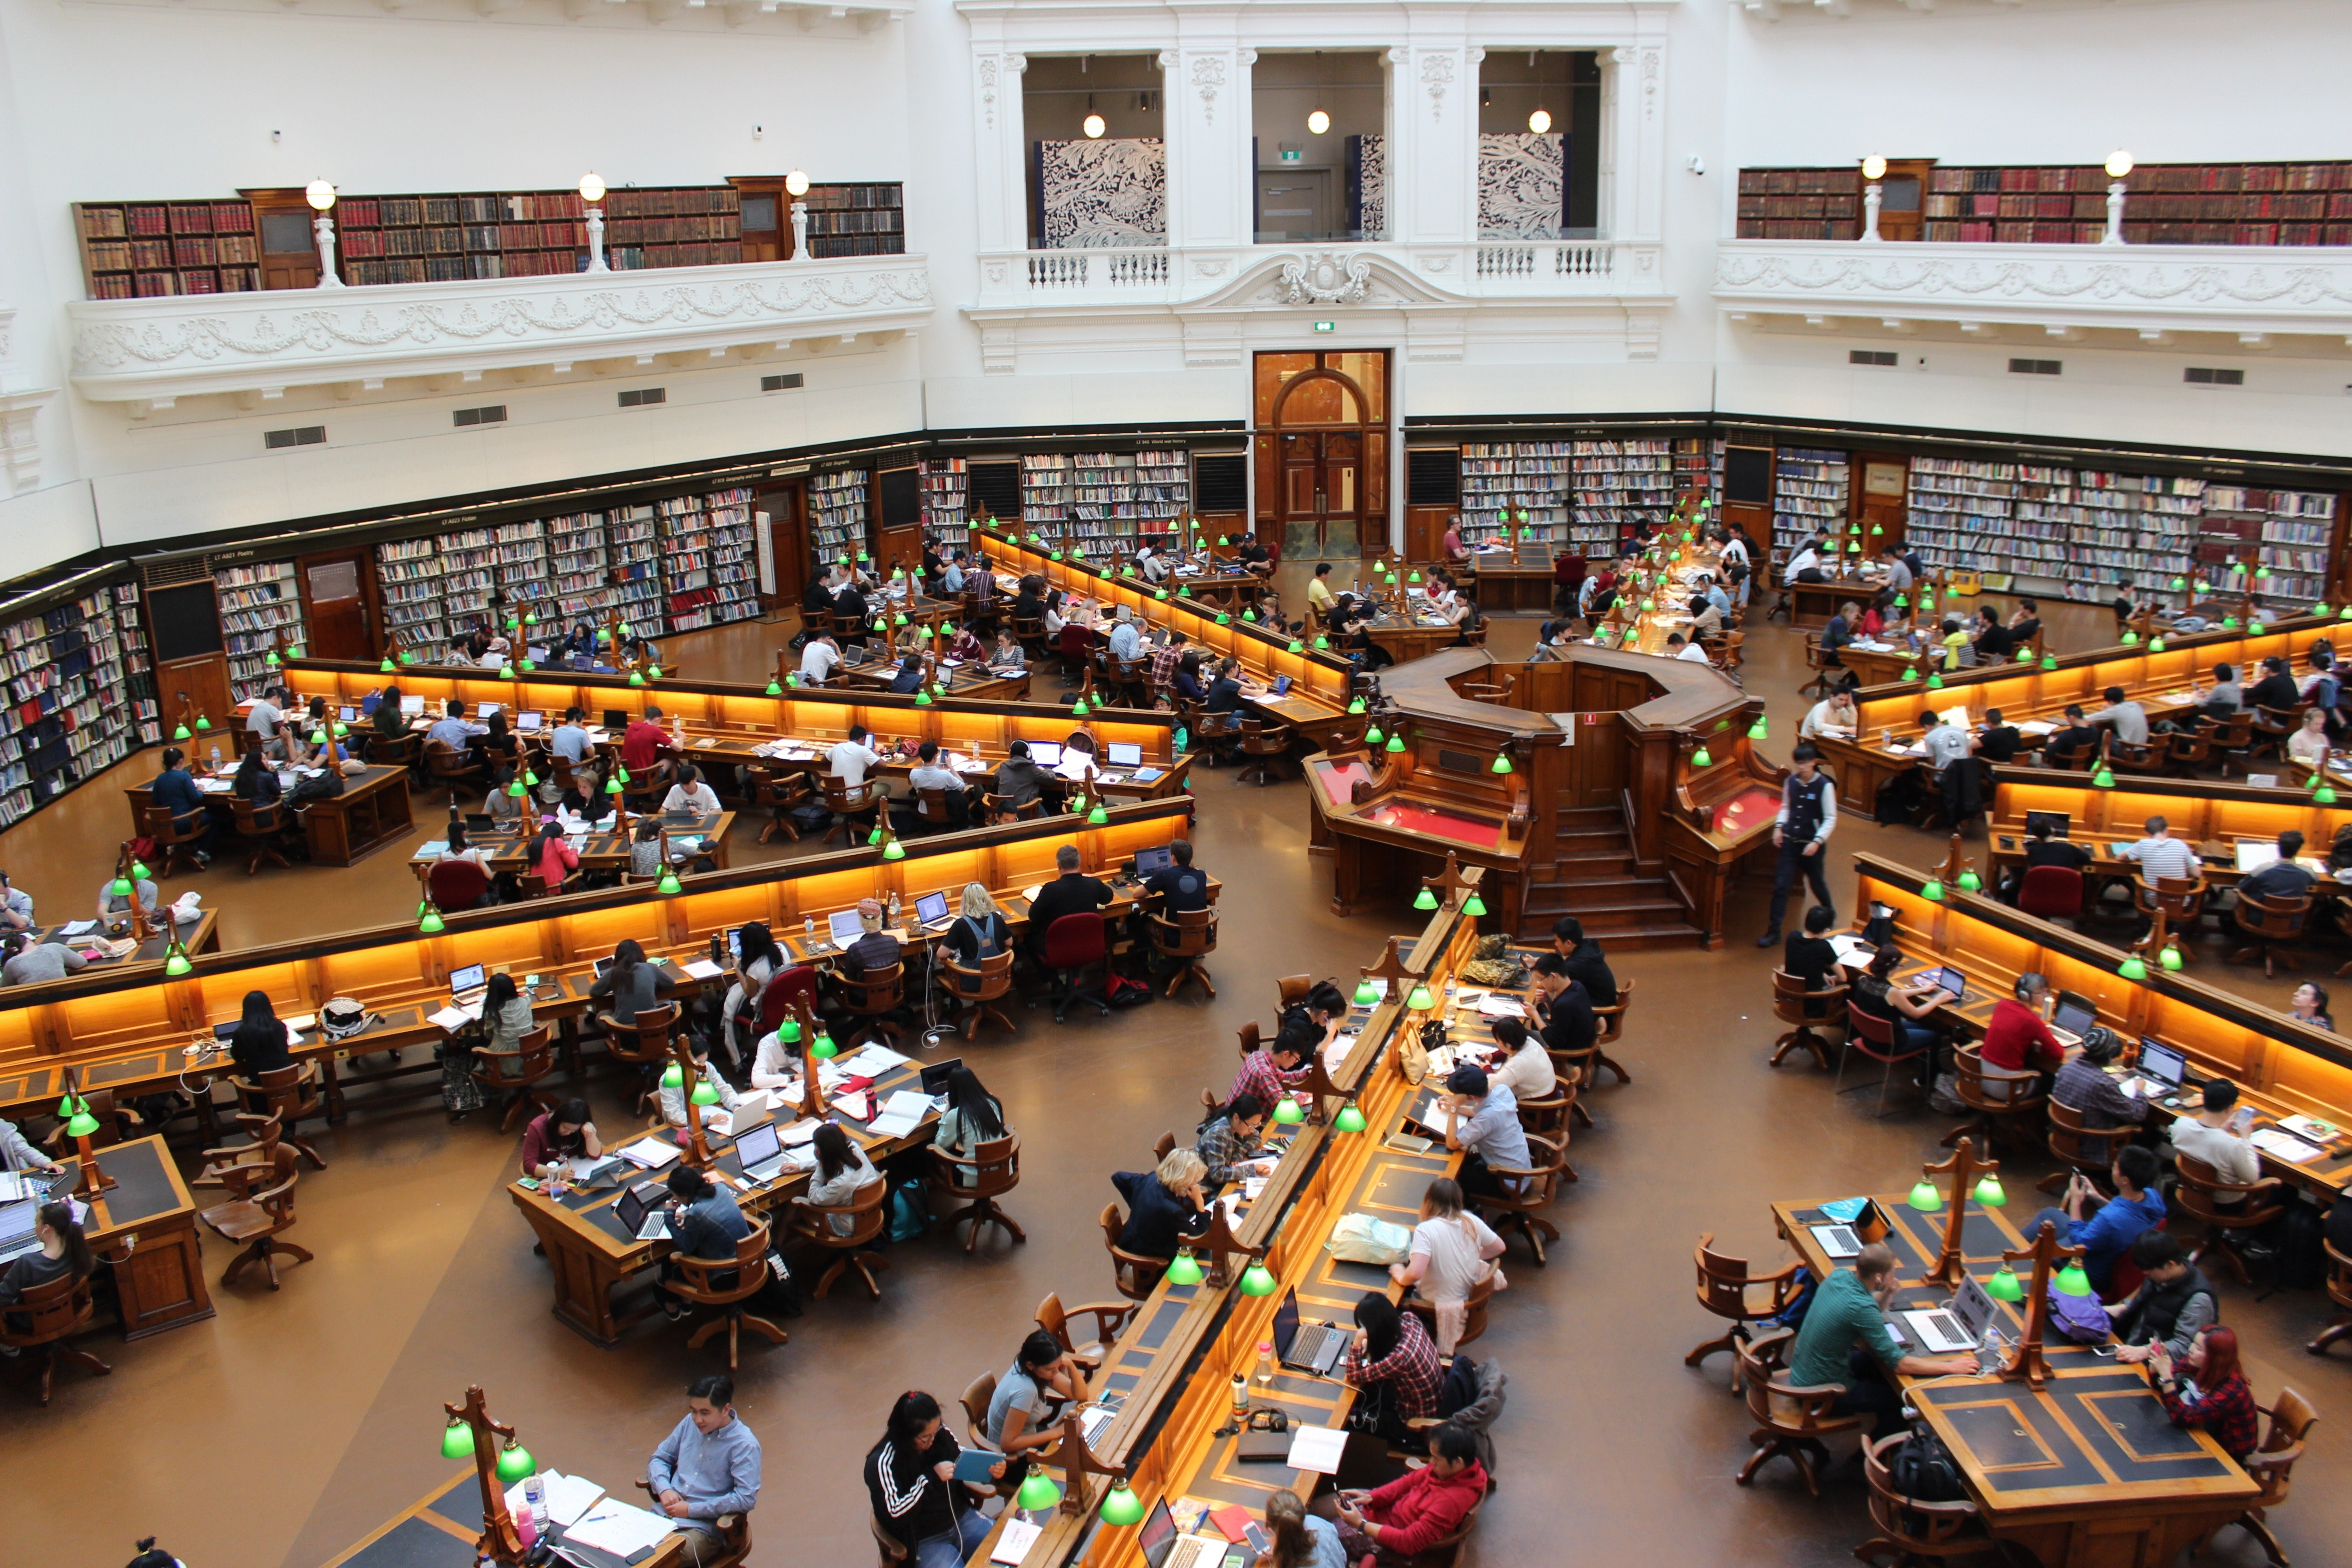 People Sitting Inside Well Lit Room, Academic, Library, Tables, Studying, HQ Photo